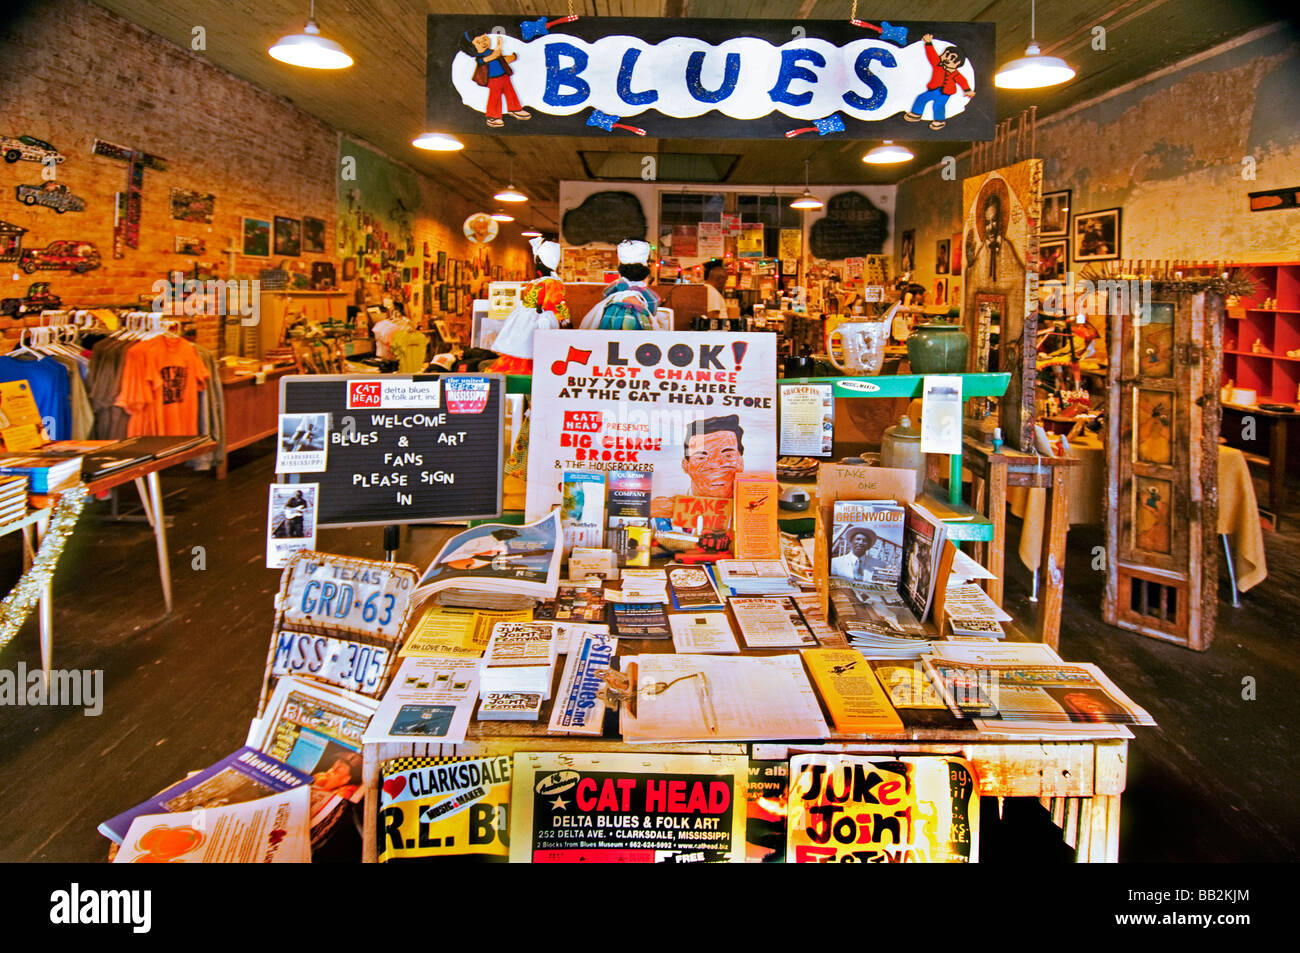 Interior of the Cat Head Delta Blues and Folk Art record store in Clarksdale, Mississippi - Stock Image